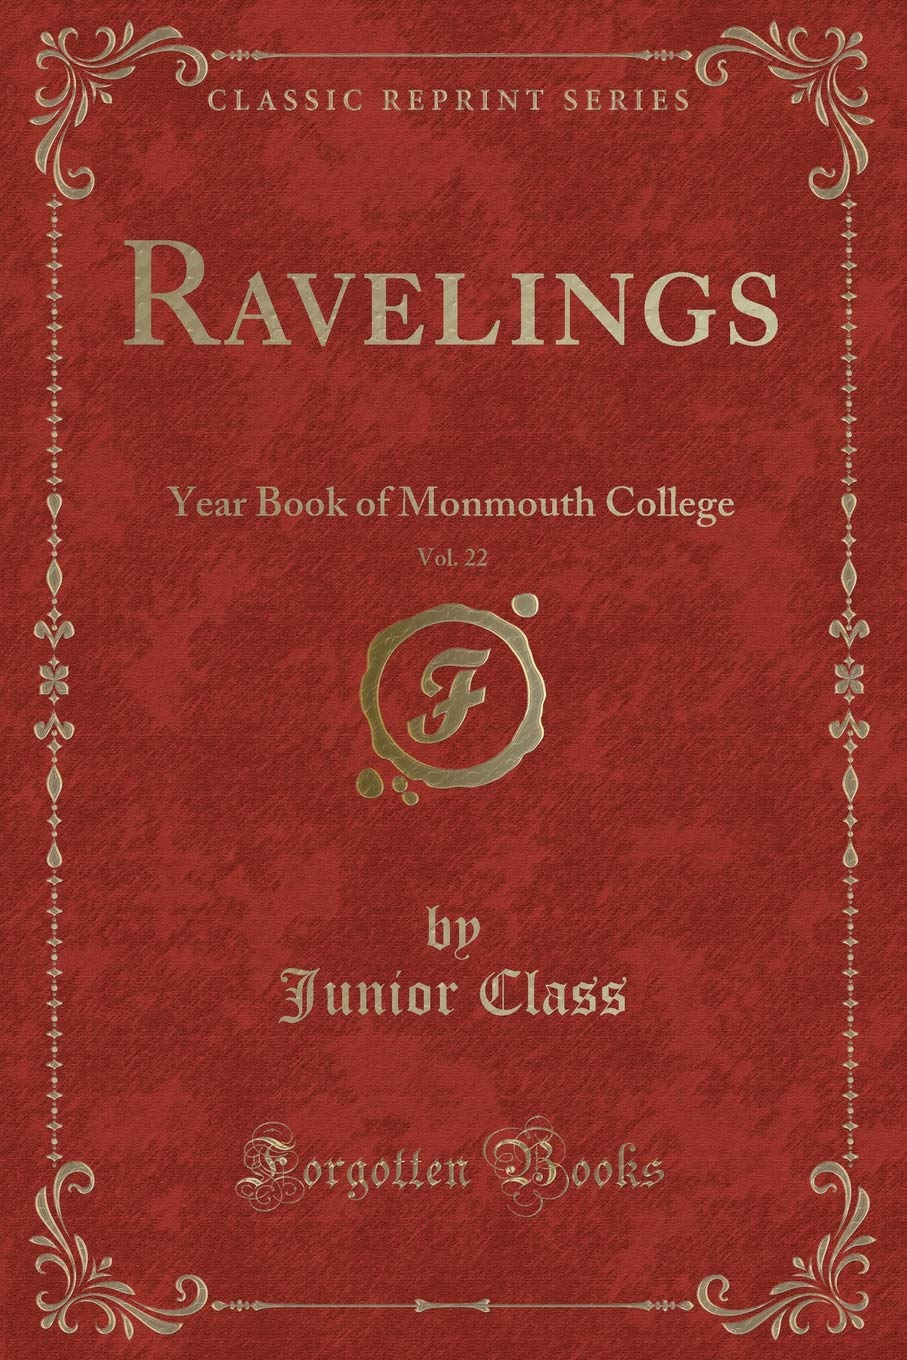 Ravelings, Vol. 22: Year Book of Monmouth College (Classic Reprint) PDF